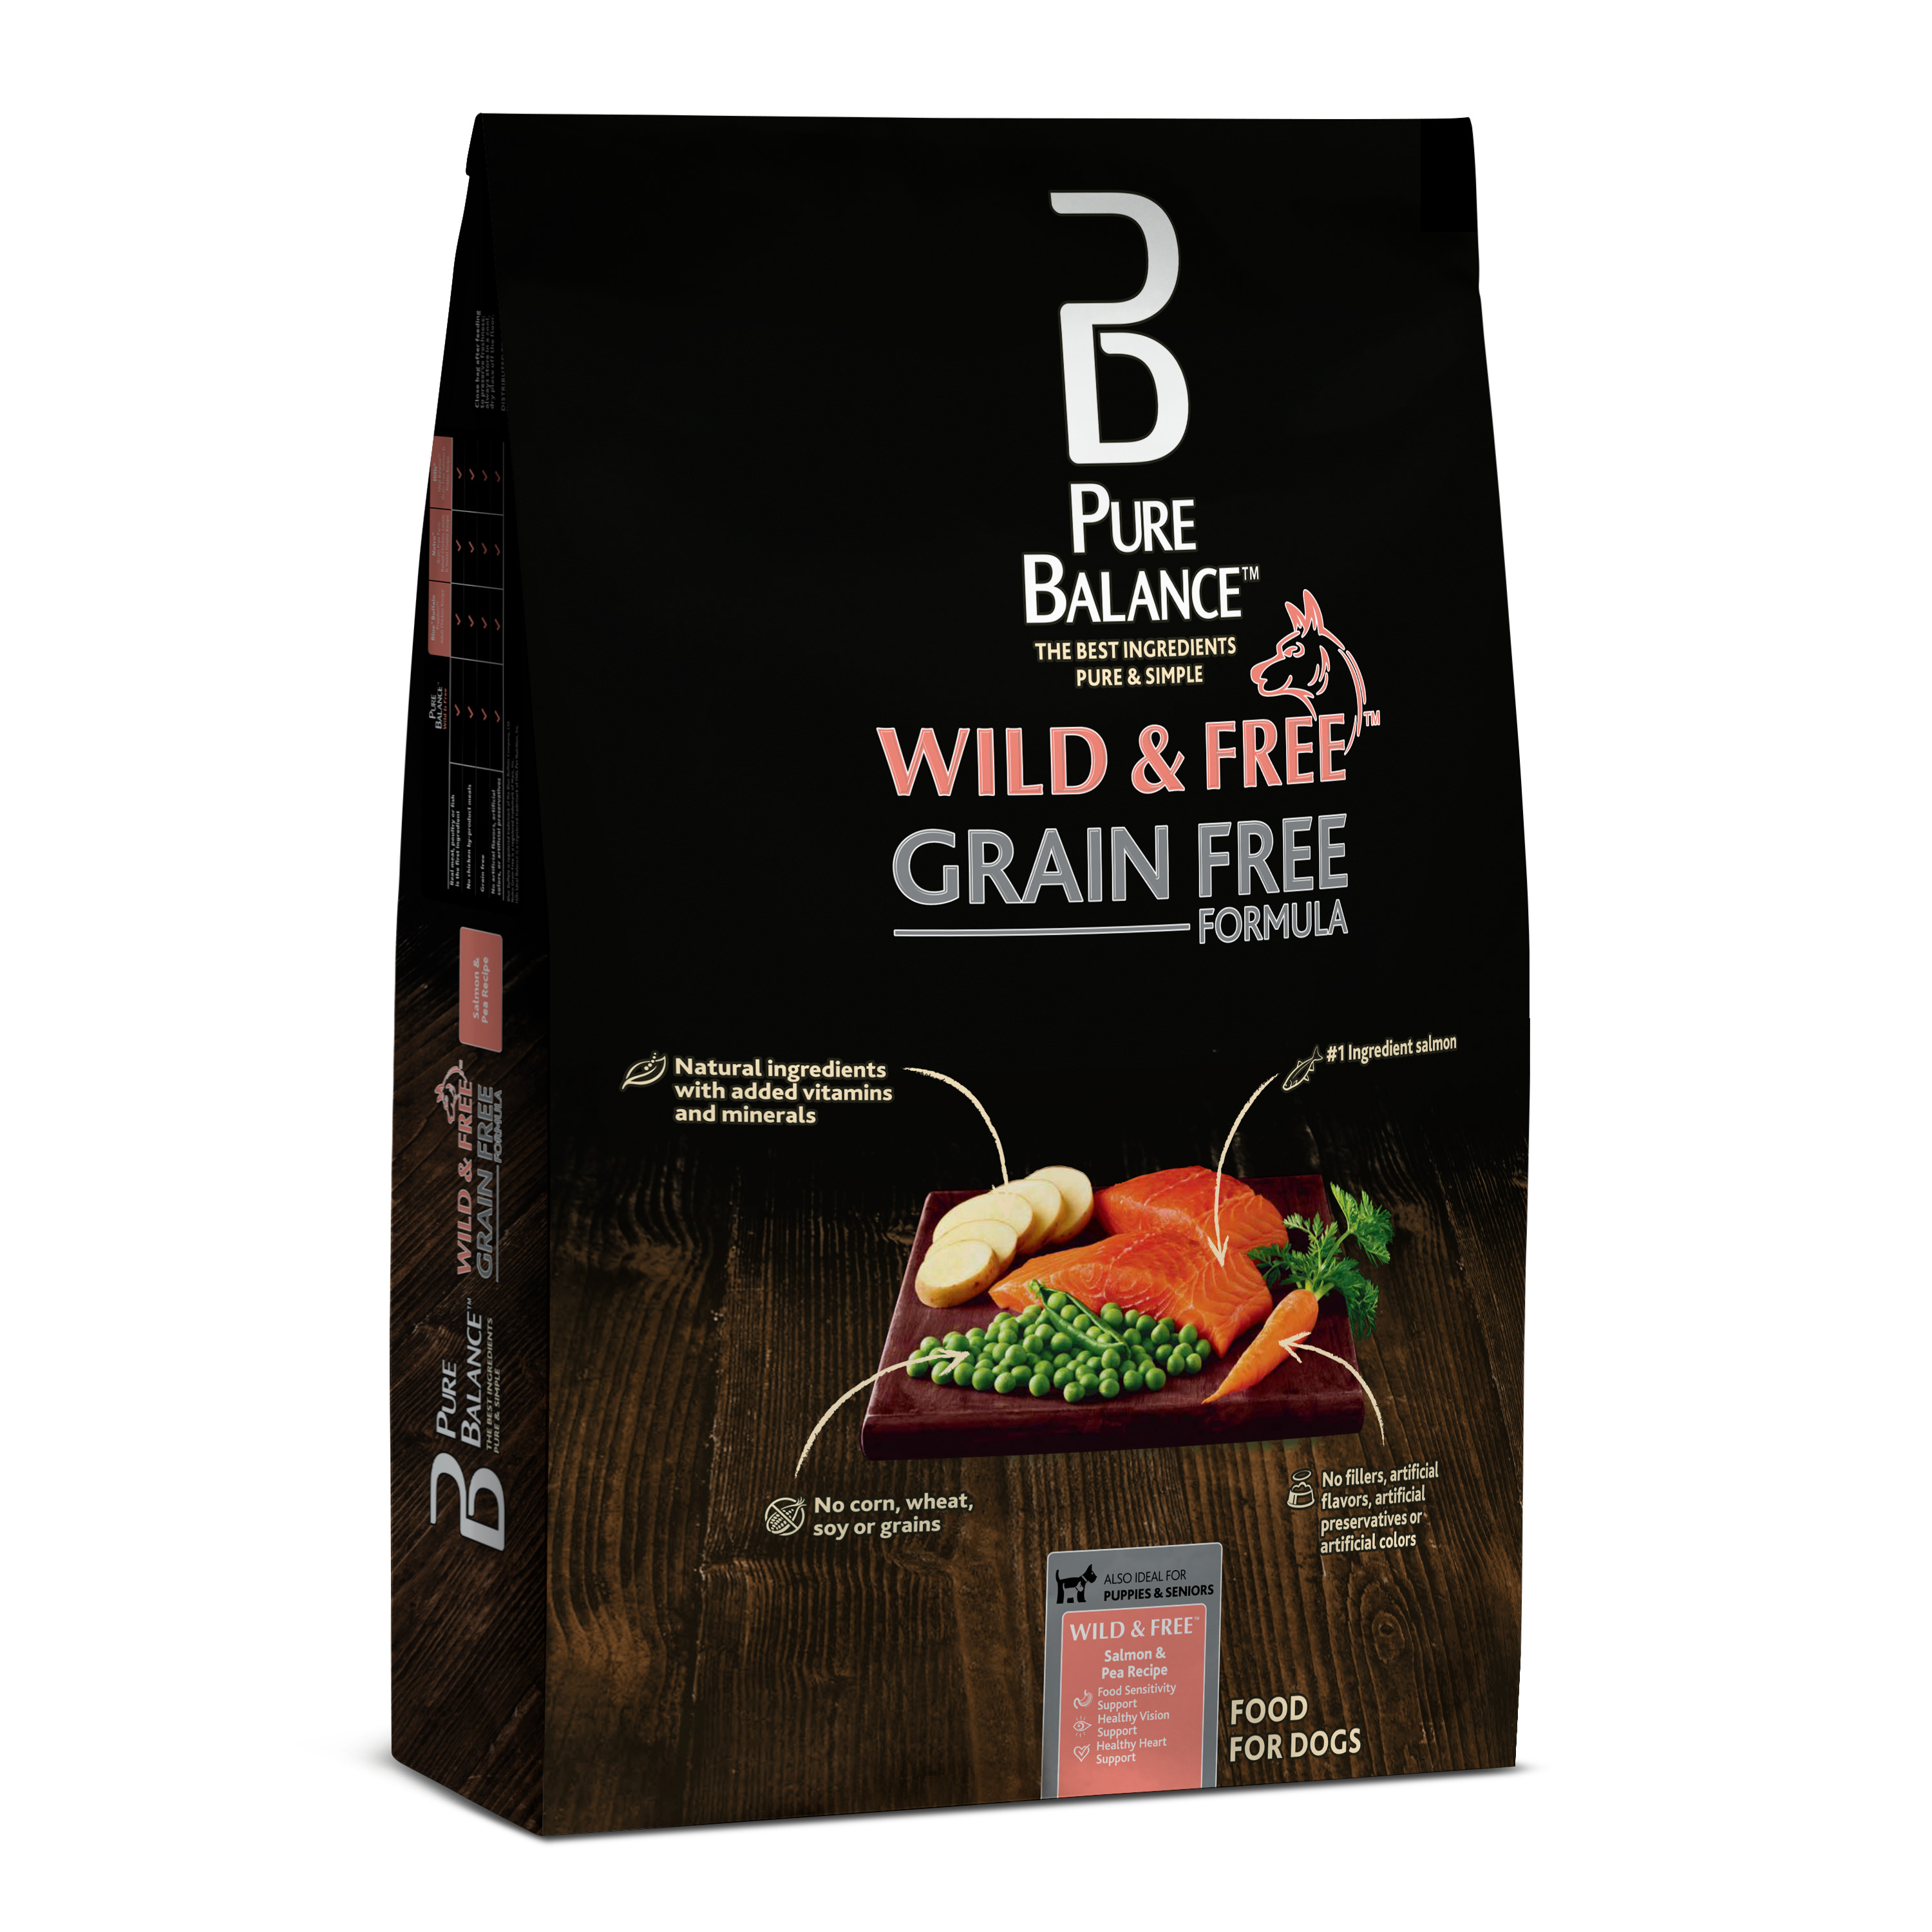 Pure Balance Grain Free Salmon & Pea Recipe Food for Dogs 24lbs